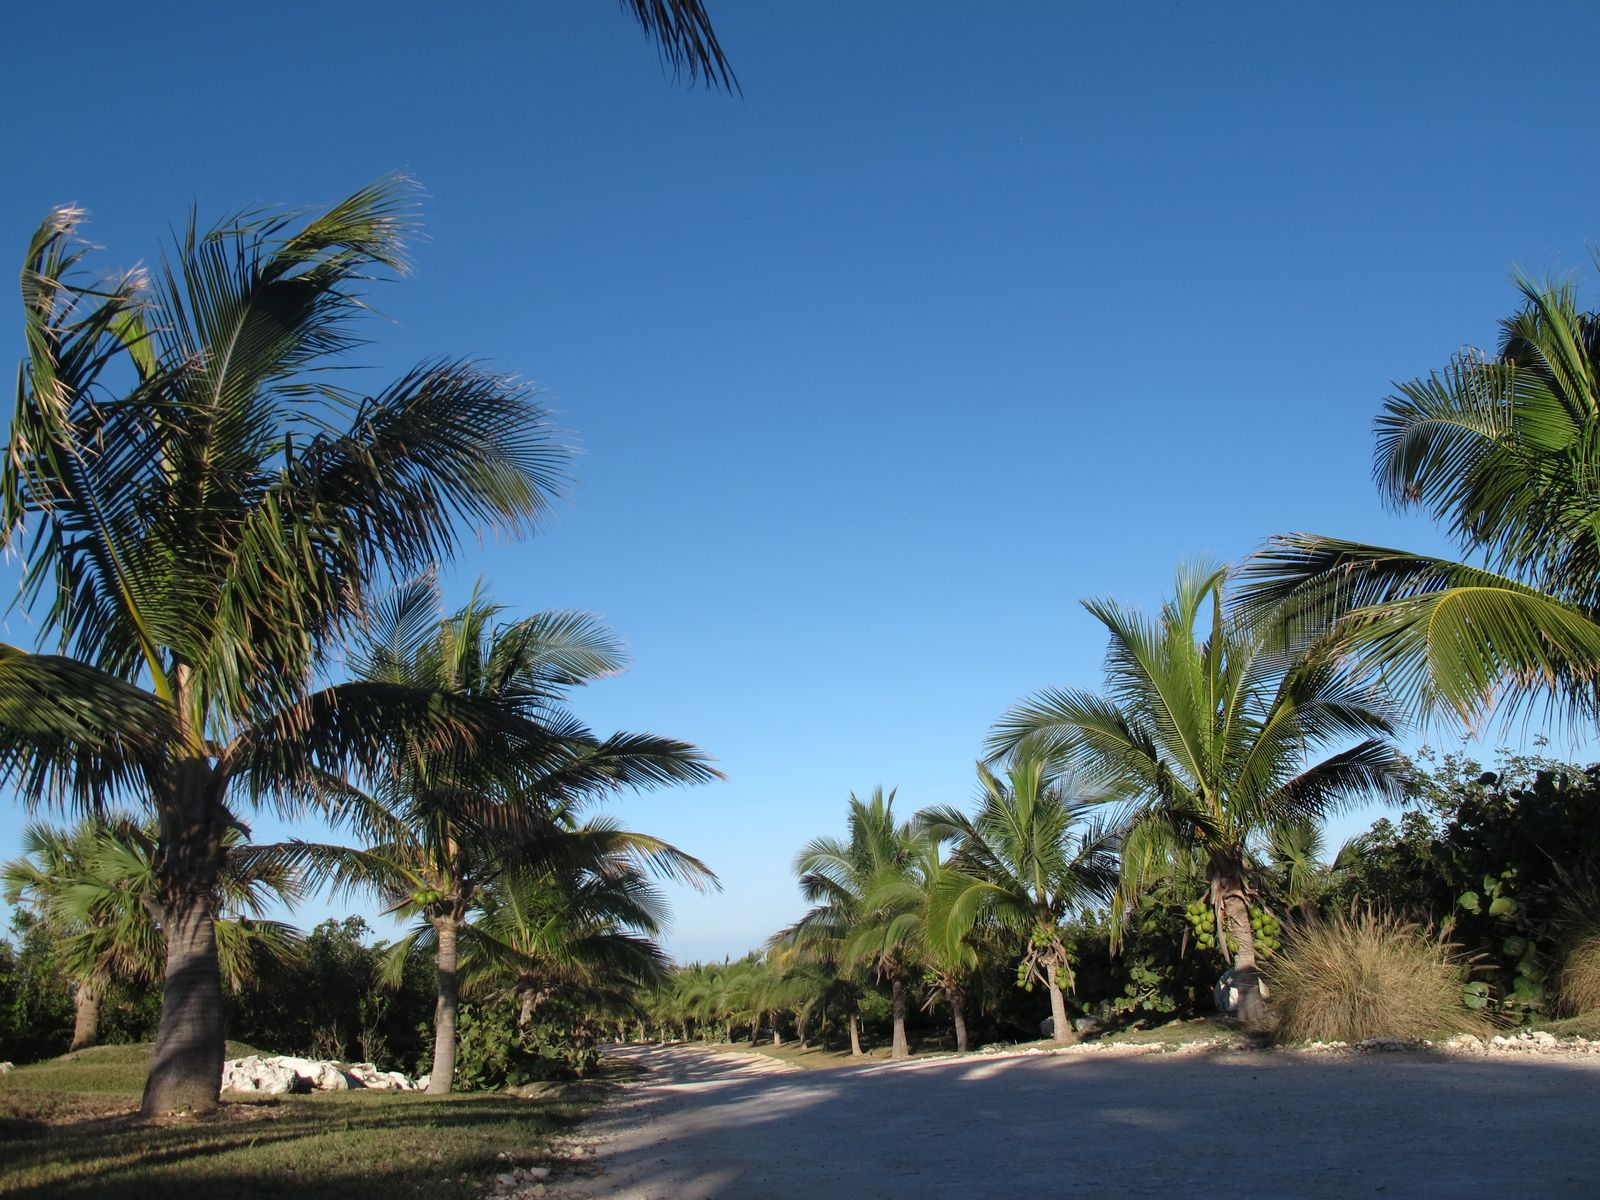 Terreno por un Venta en South Harbour's Edge Lot - S10 Schooner Bay, Abaco Bahamas